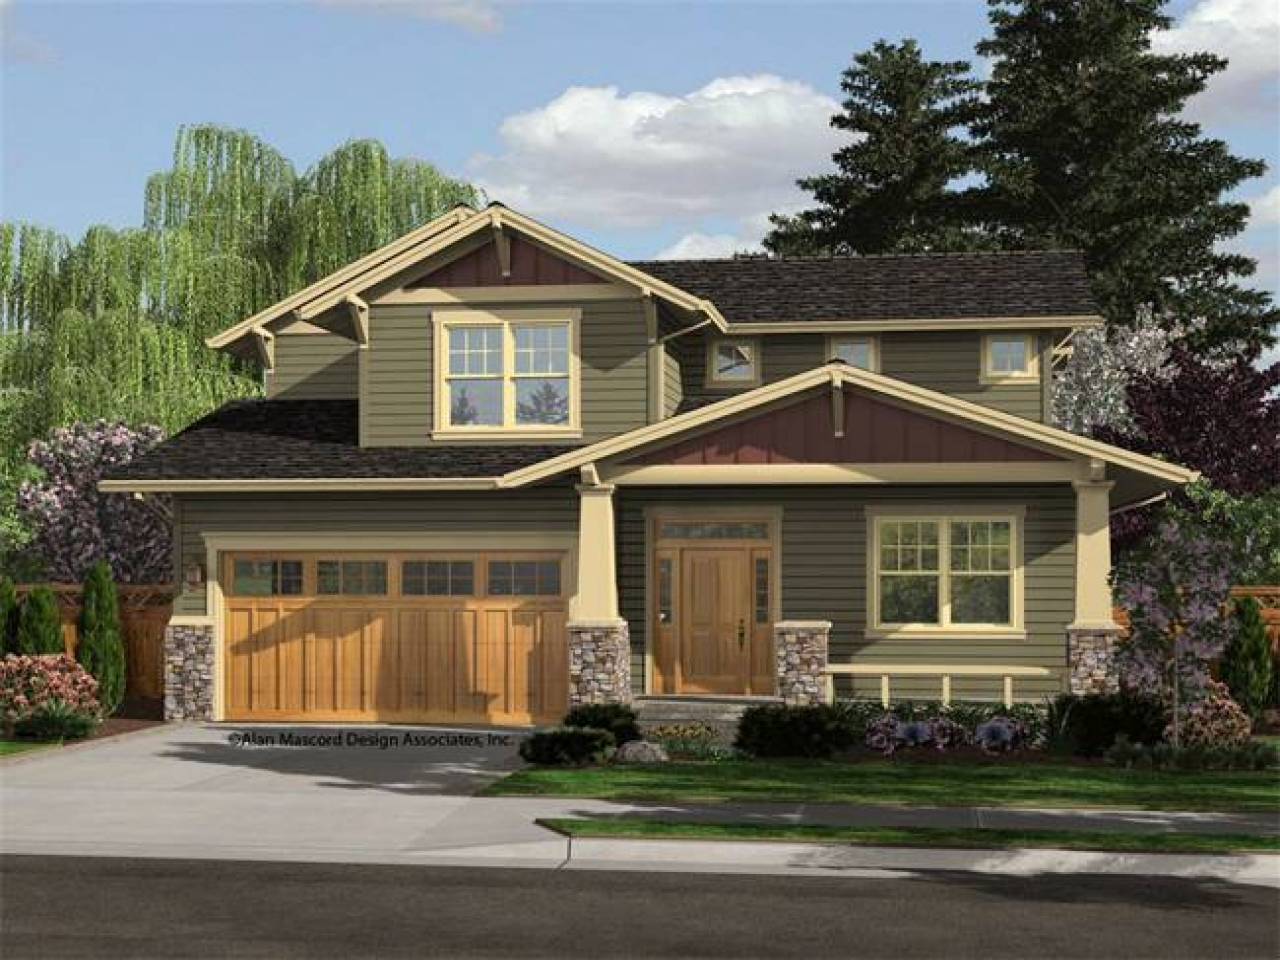 Craftsman house plans ranch style home style craftsman for Craftsman prairie style house plans